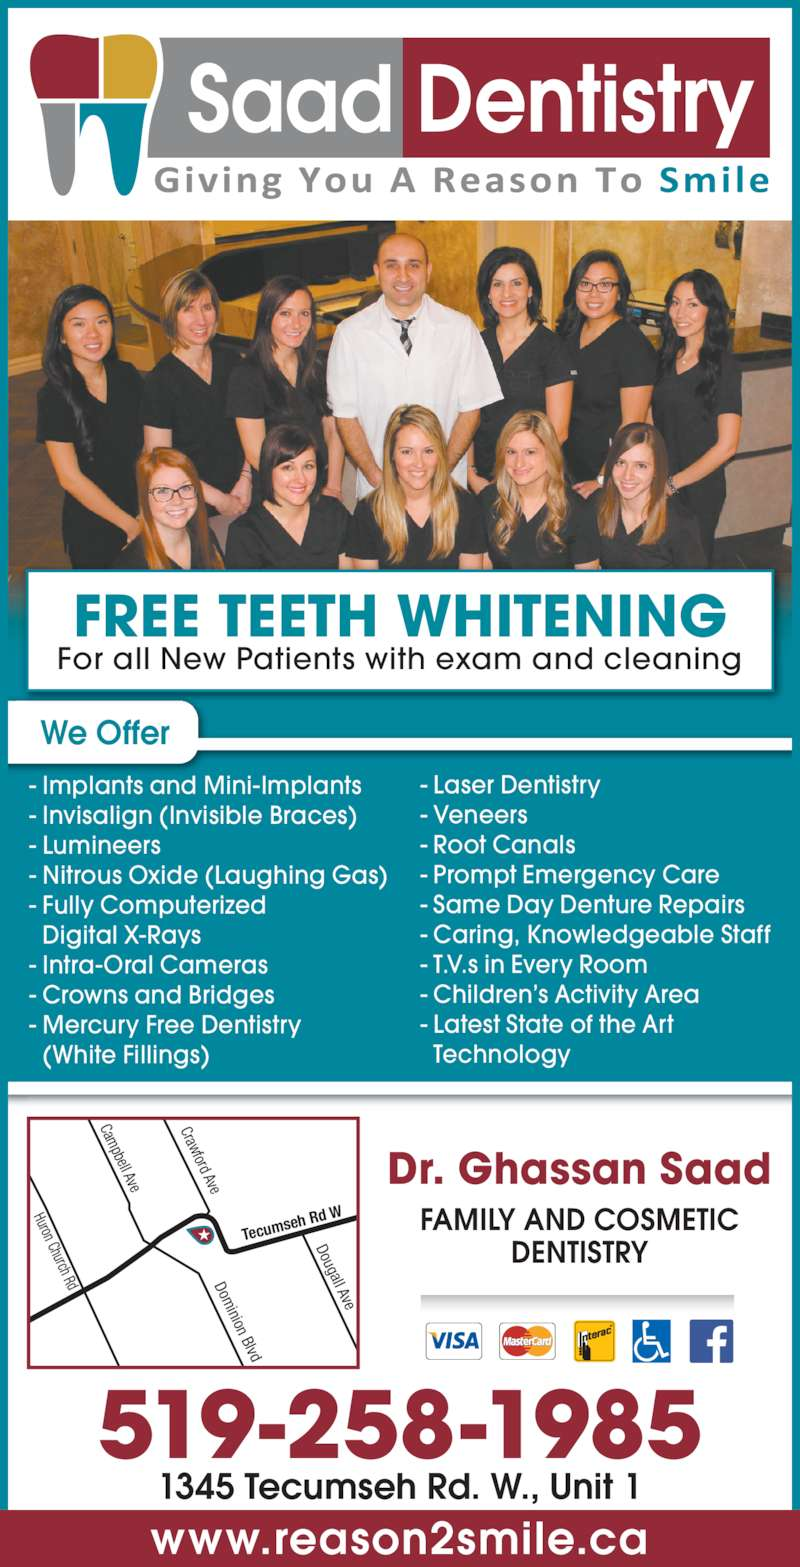 Saad Ghassan Dr (519-258-1985) - Display Ad - FREE TEETH WHITENING For all New Patients with exam and cleaning www.reason2smile.ca 519-258-1985 Huron Church Rd Cam pbell Ave Dom inion Blvd Crawford Ave Dougall Ave Tecum seh Rd  W 1345 Tecumseh Rd. W., Unit 1 We Offer - Implants and Mini-Implants - Invisalign (Invisible Braces) - Lumineers - Nitrous Oxide (Laughing Gas) - Fully Computerized   Digital X-Rays - Intra-Oral Cameras - Crowns and Bridges - Mercury Free Dentistry   (White Fillings) - Laser Dentistry - Veneers - Root Canals - Prompt Emergency Care Dr. Ghassan Saad - Same Day Denture Repairs - Caring, Knowledgeable Staff - T.V.s in Every Room - Children's Activity Area - Latest State of the Art   Technology FAMILY AND COSMETIC DENTISTRY